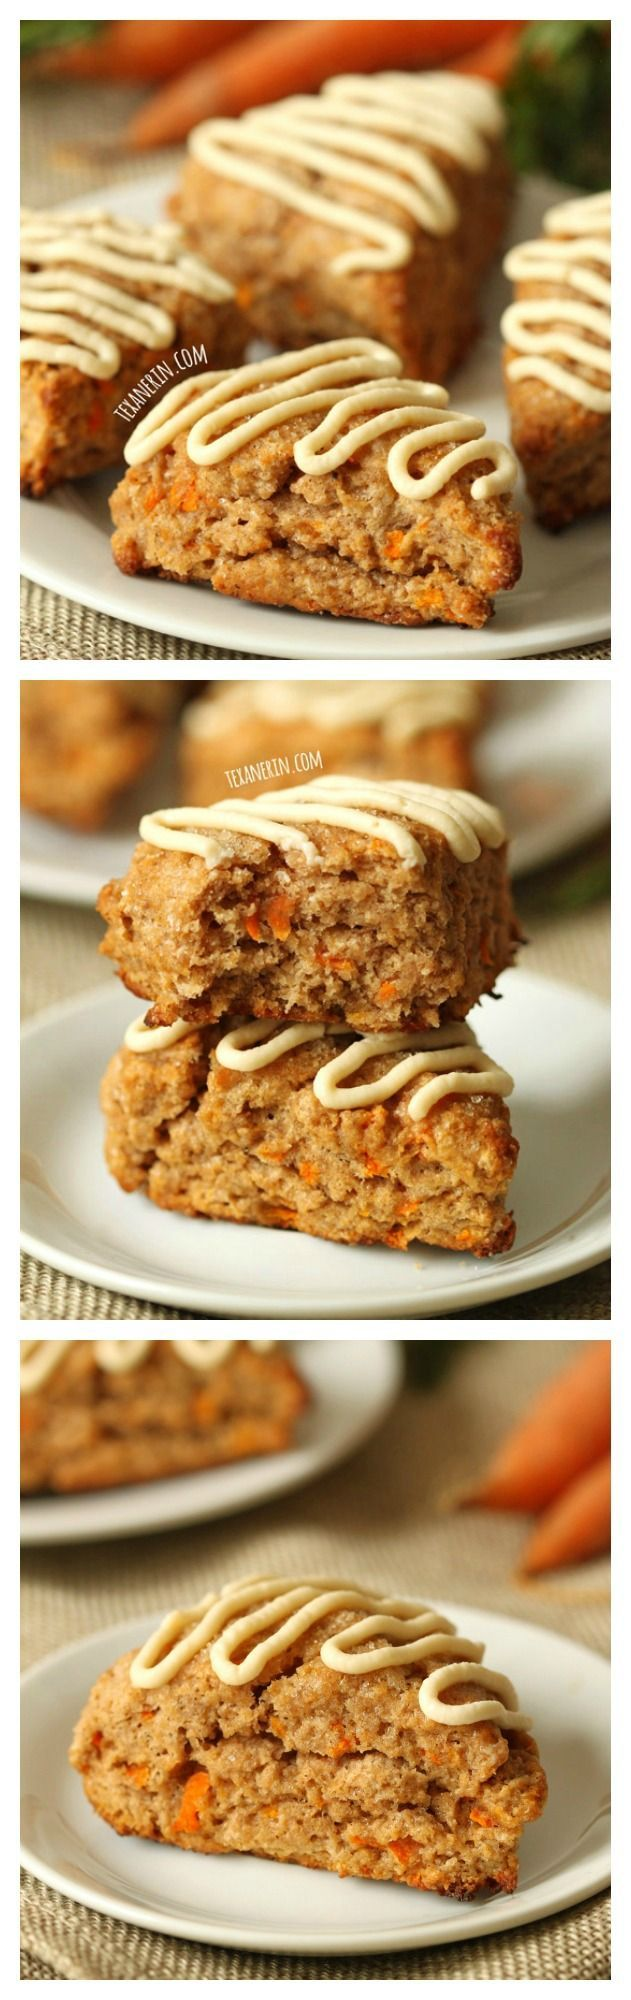 100% Whole Grain Carrot Cake Scones with Cream Cheese Frosting